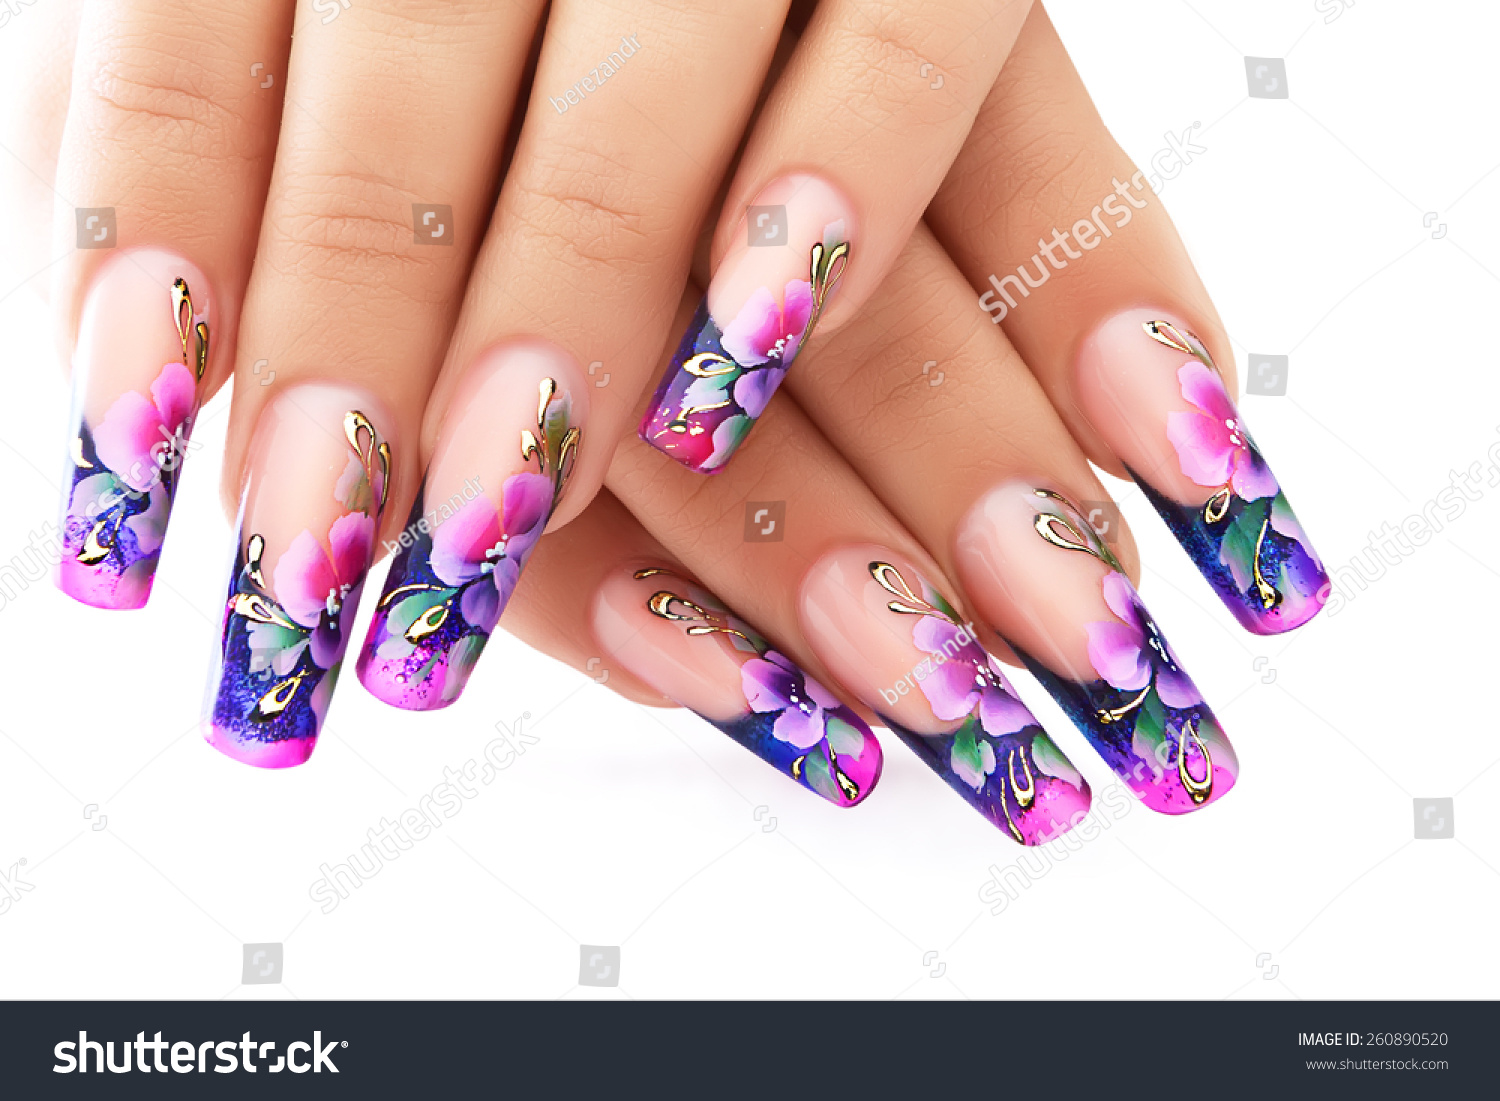 Female hand floral art design nails stock photo 260890520 female hand with floral art design nails prinsesfo Image collections